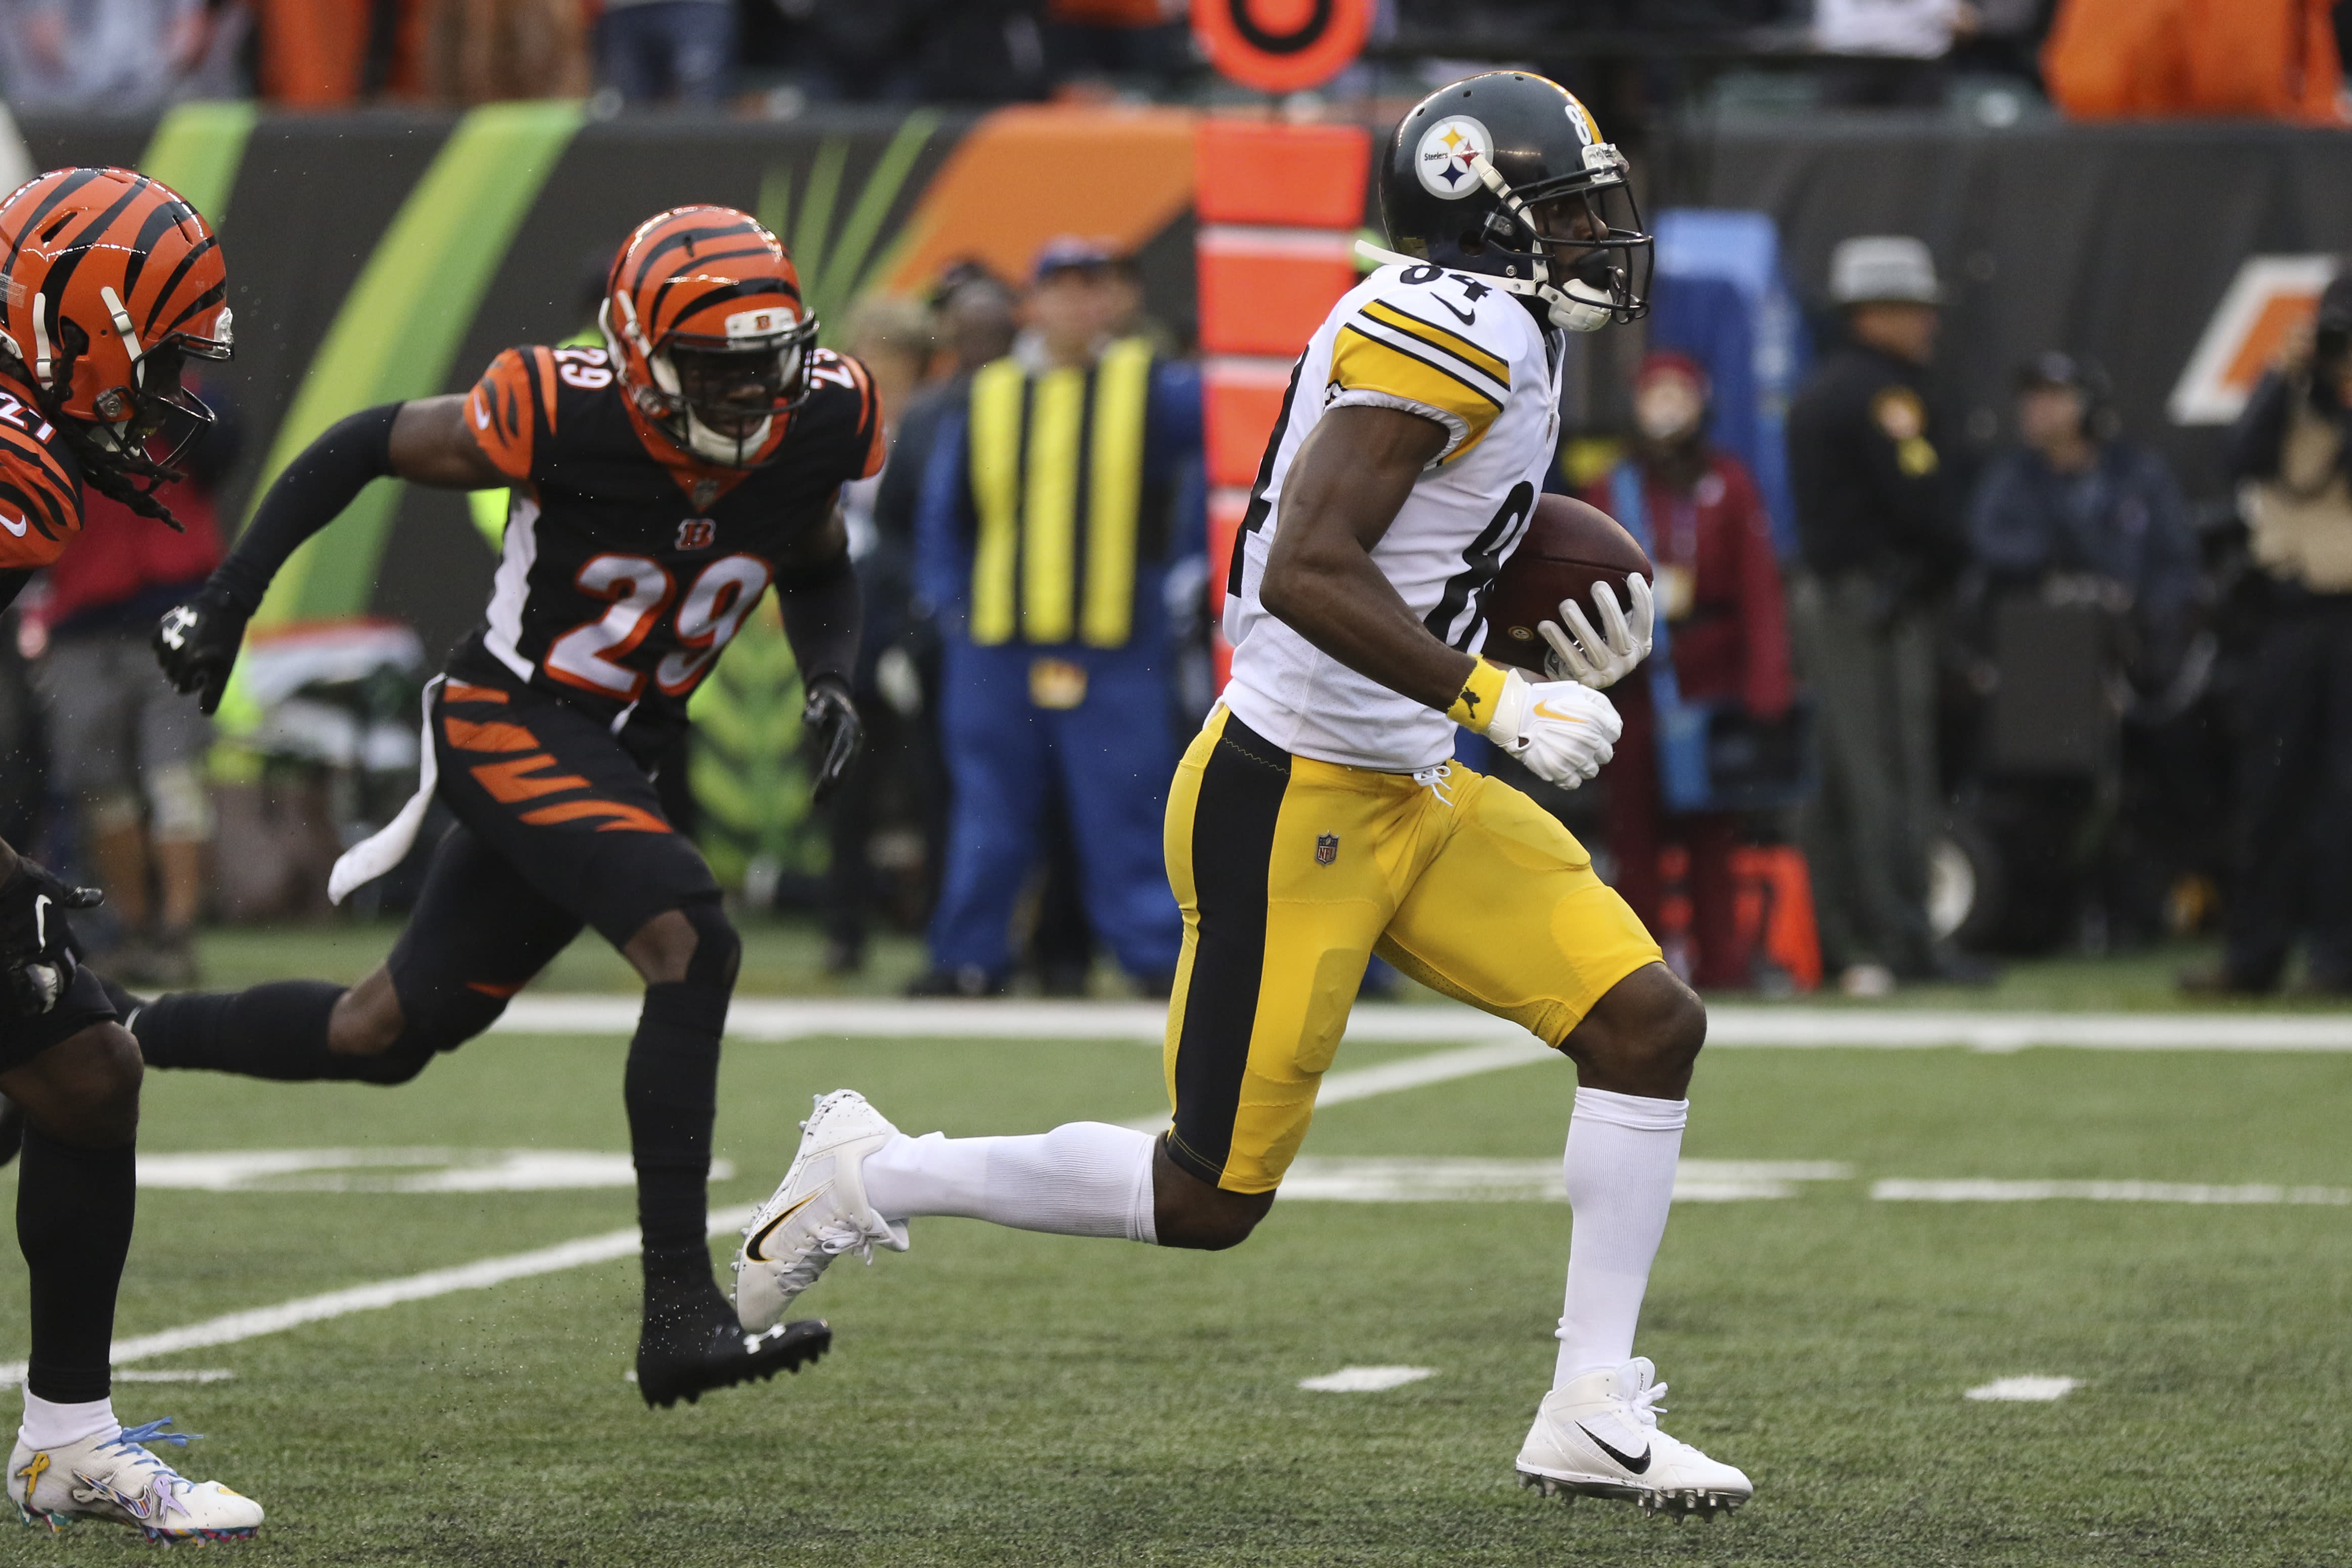 NFL: Steelers' game-winning touchdown to Antonio Brown was a legal play